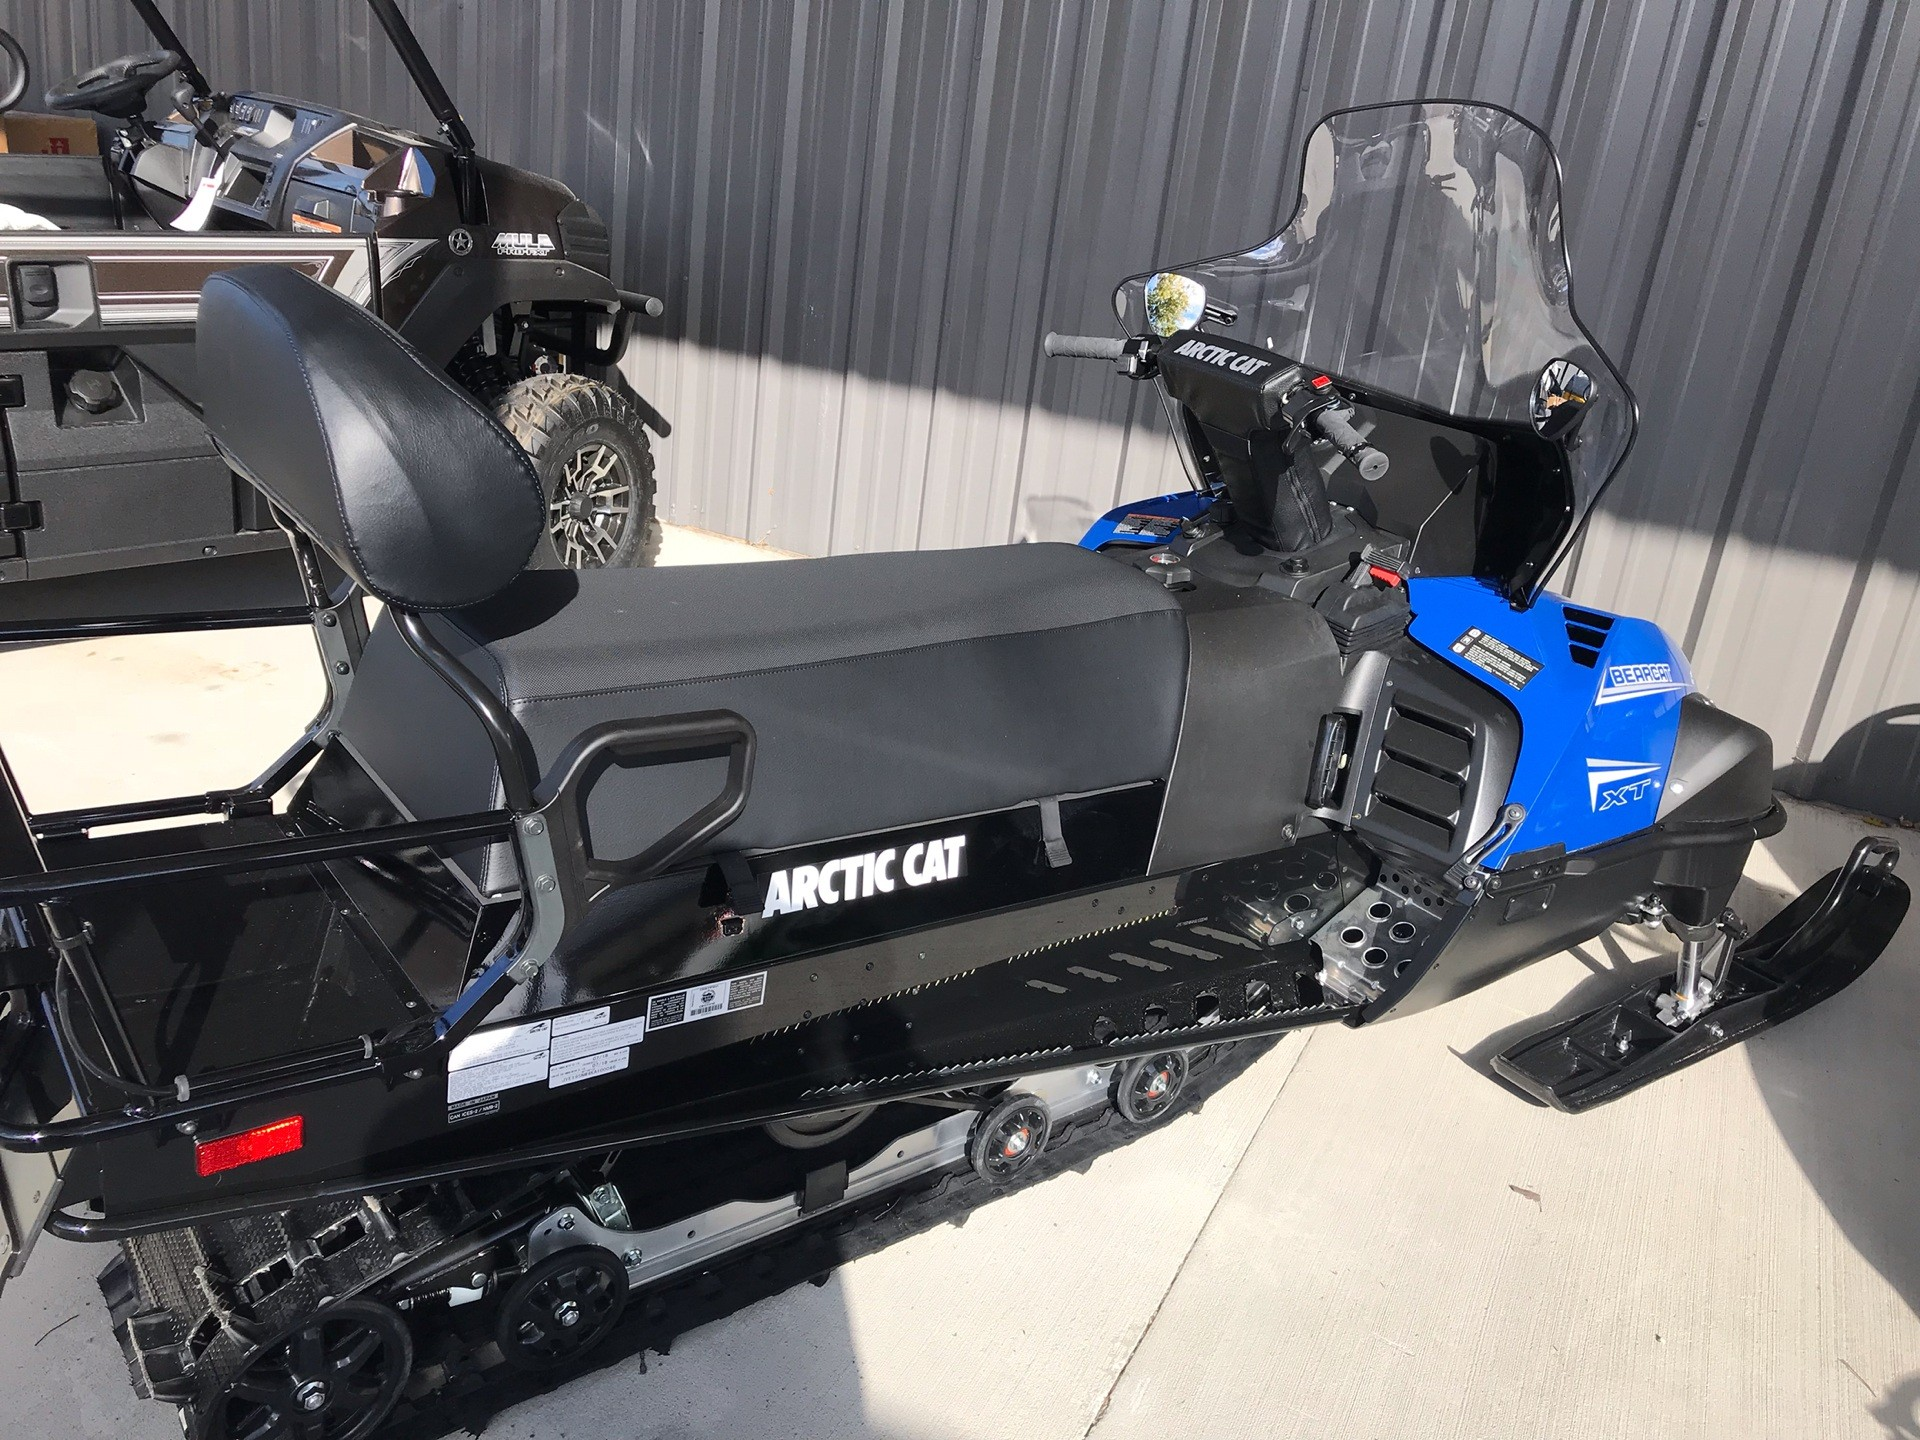 2019 Arctic Cat Bearcat XT for sale 1756